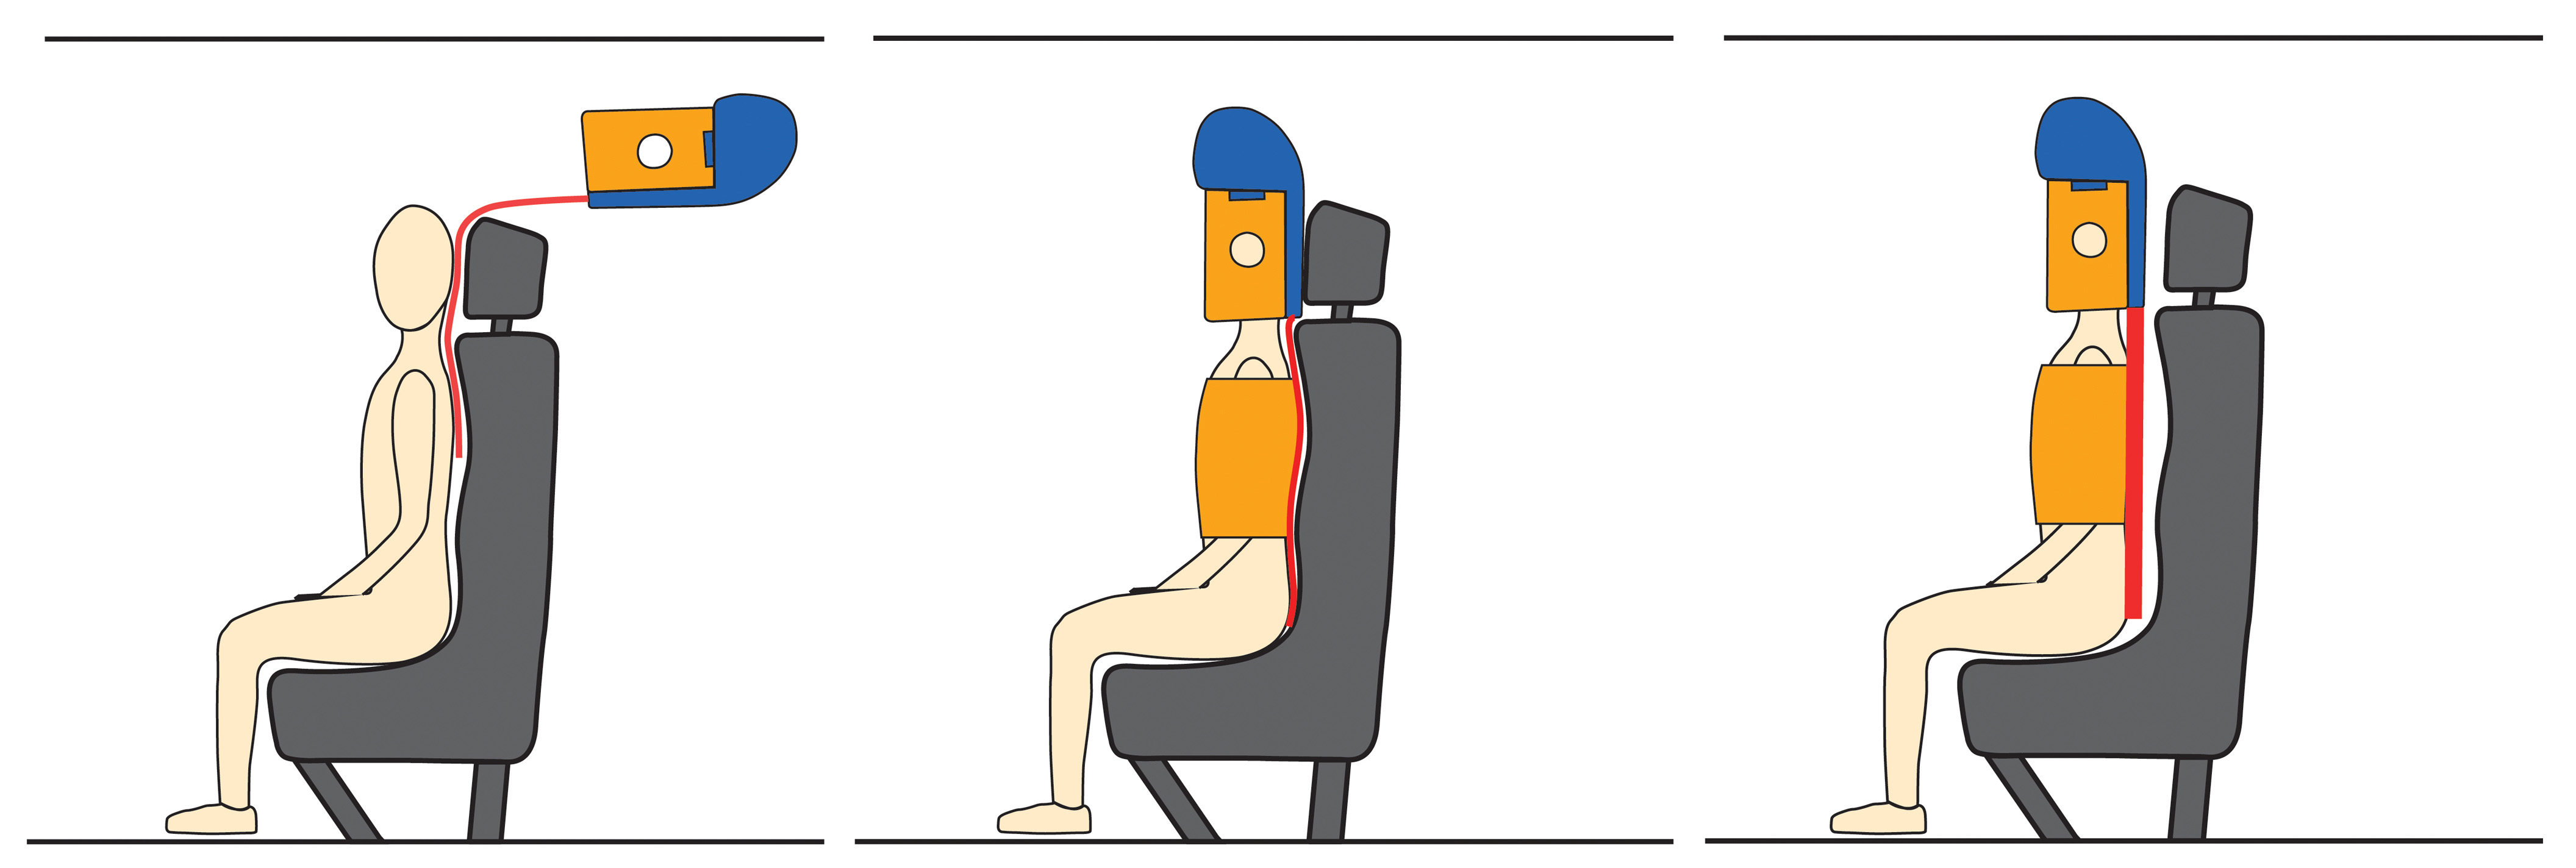 Seat Extraction